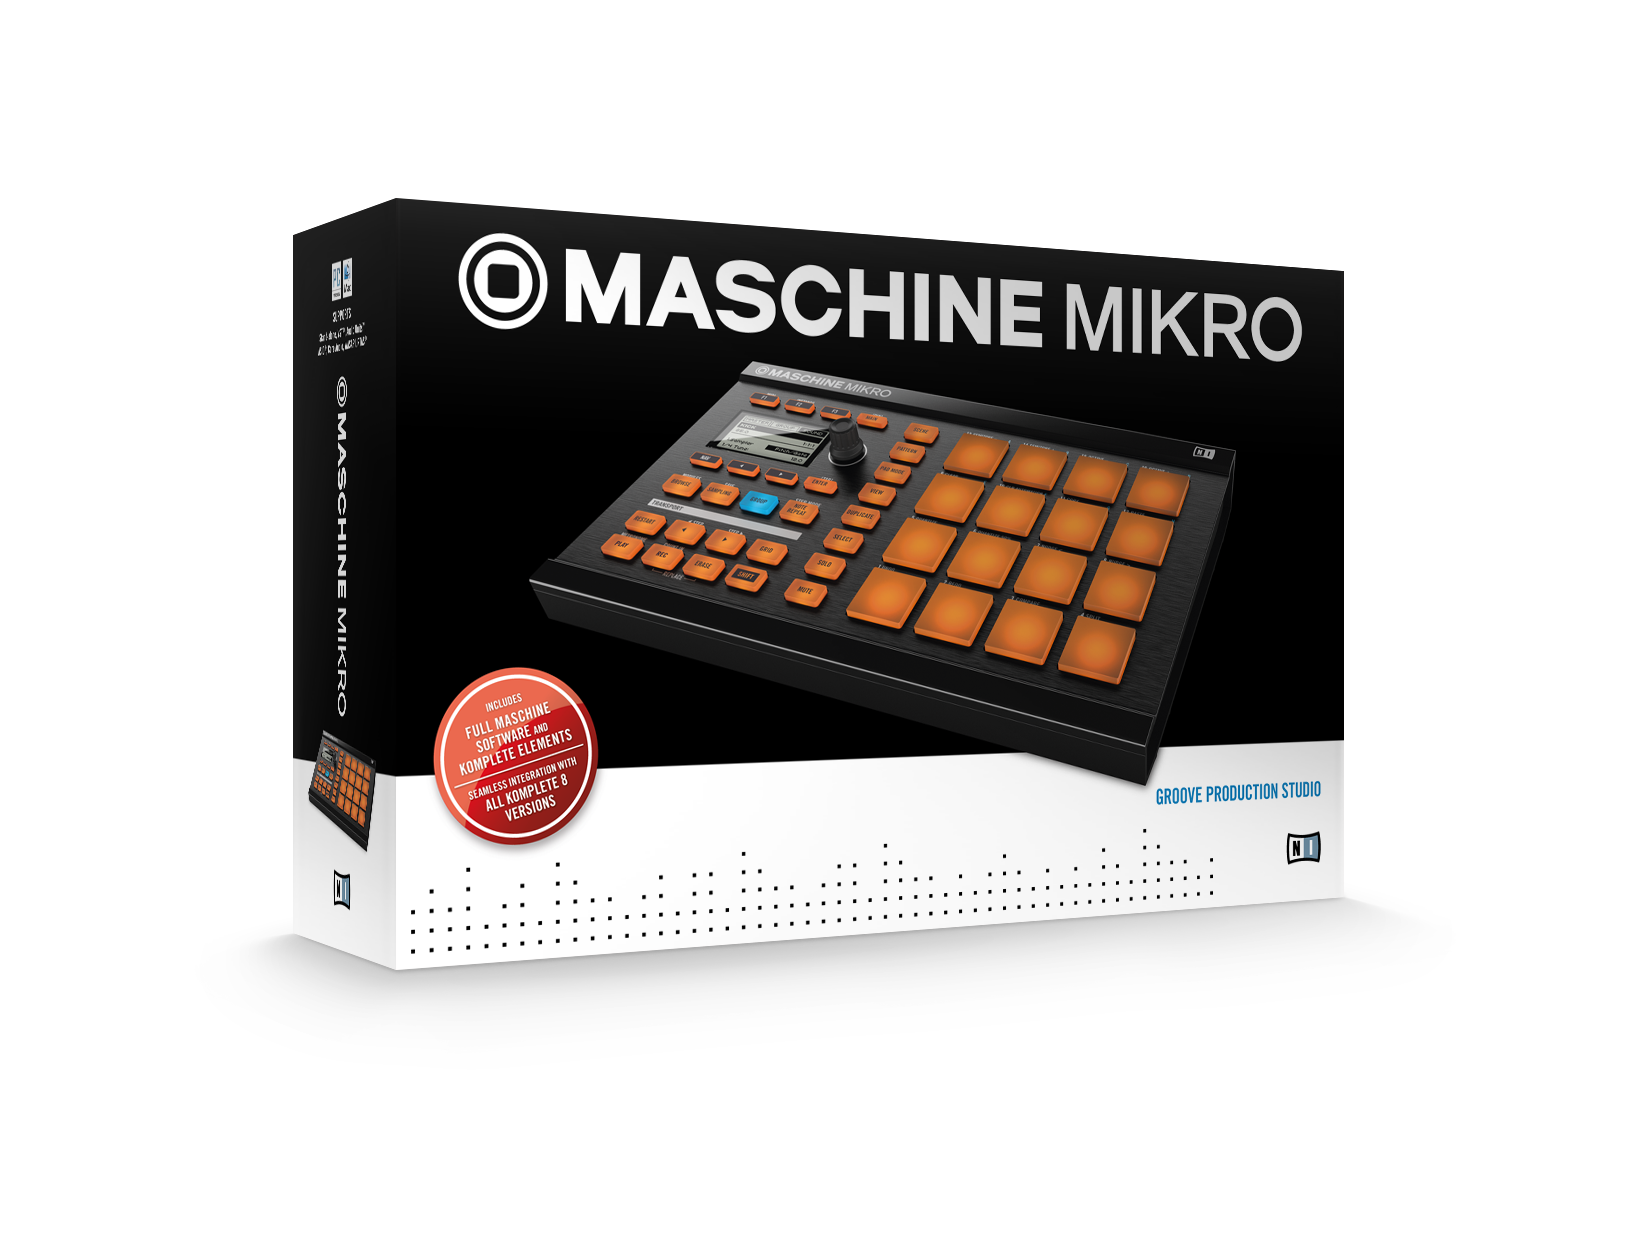 Maschine Mikro at Scan Computers for £159